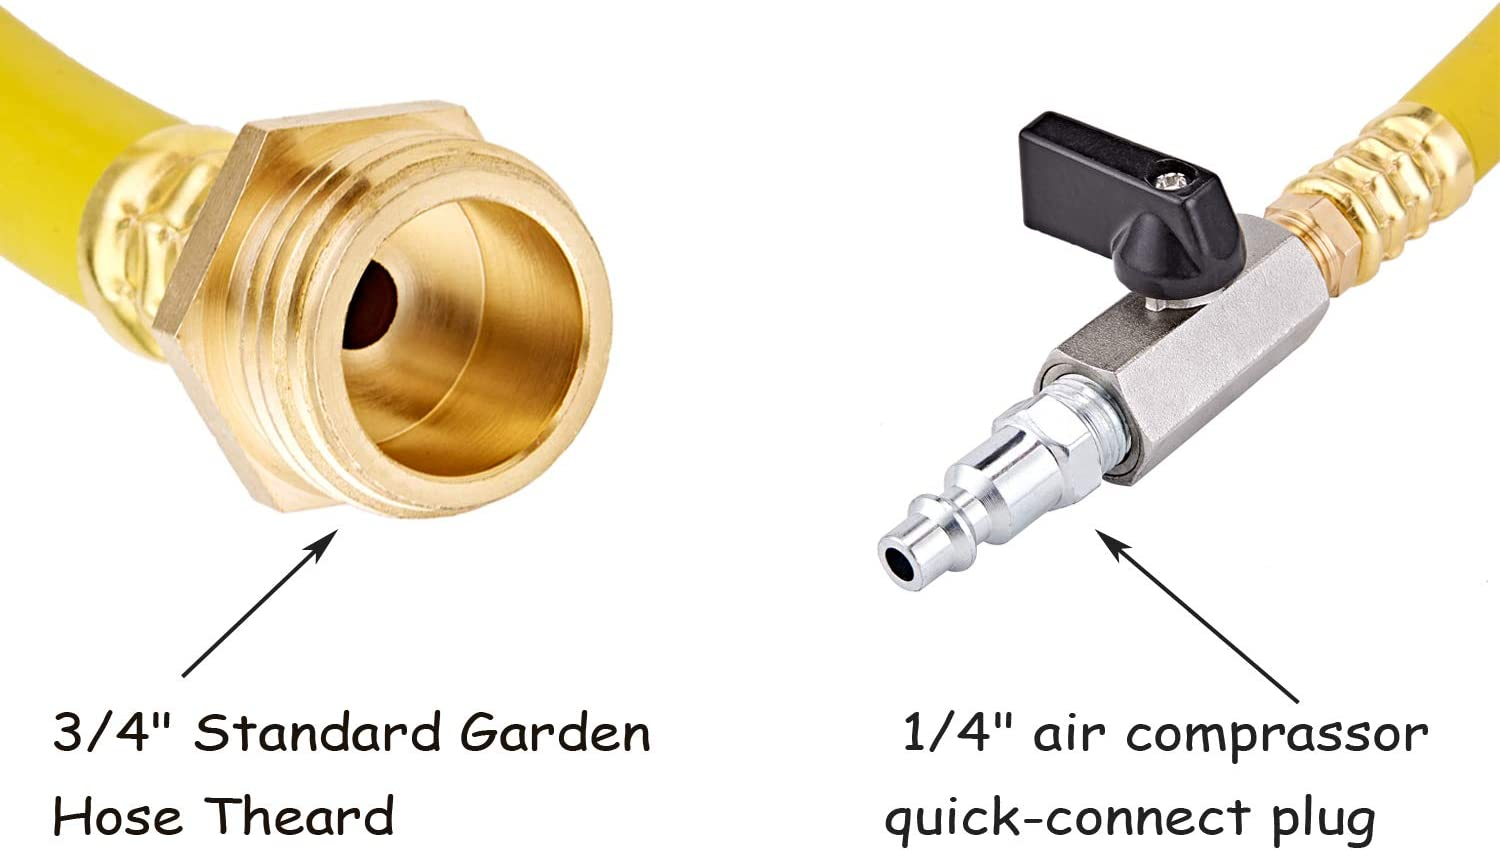 Air Compressor Quick Connect Plug Water Blow Out Adapter Fitting with Valve for Winterize Sprinkler System Cpwuflyd RV winterizing kit/& Blowout Plug